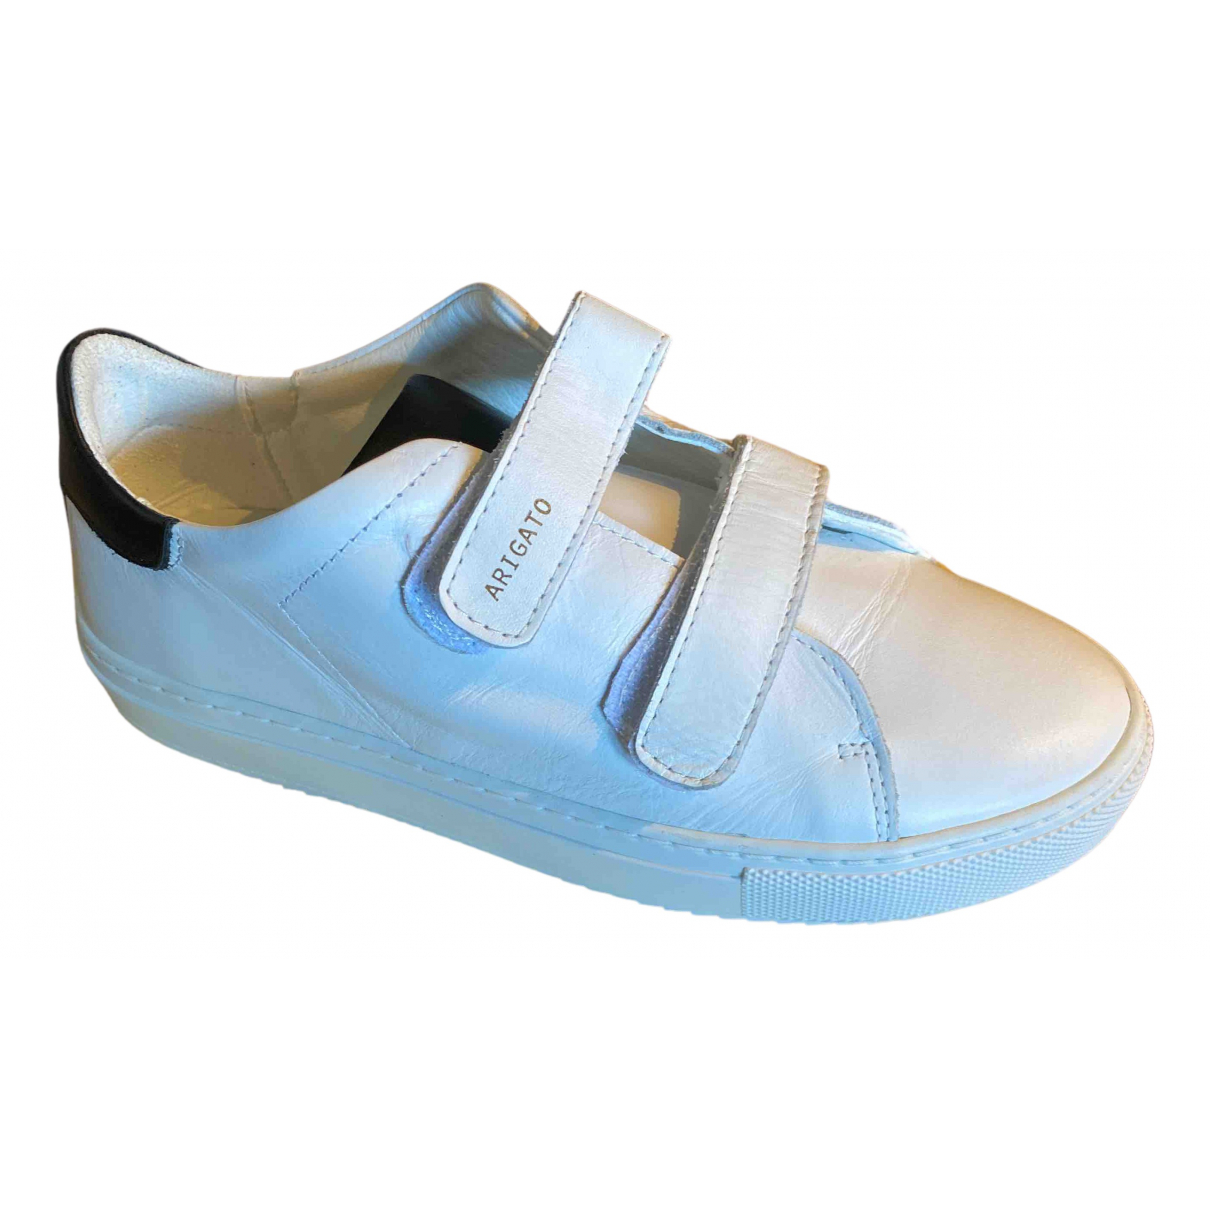 Axel Arigato N White Leather Trainers for Kids 2 UK